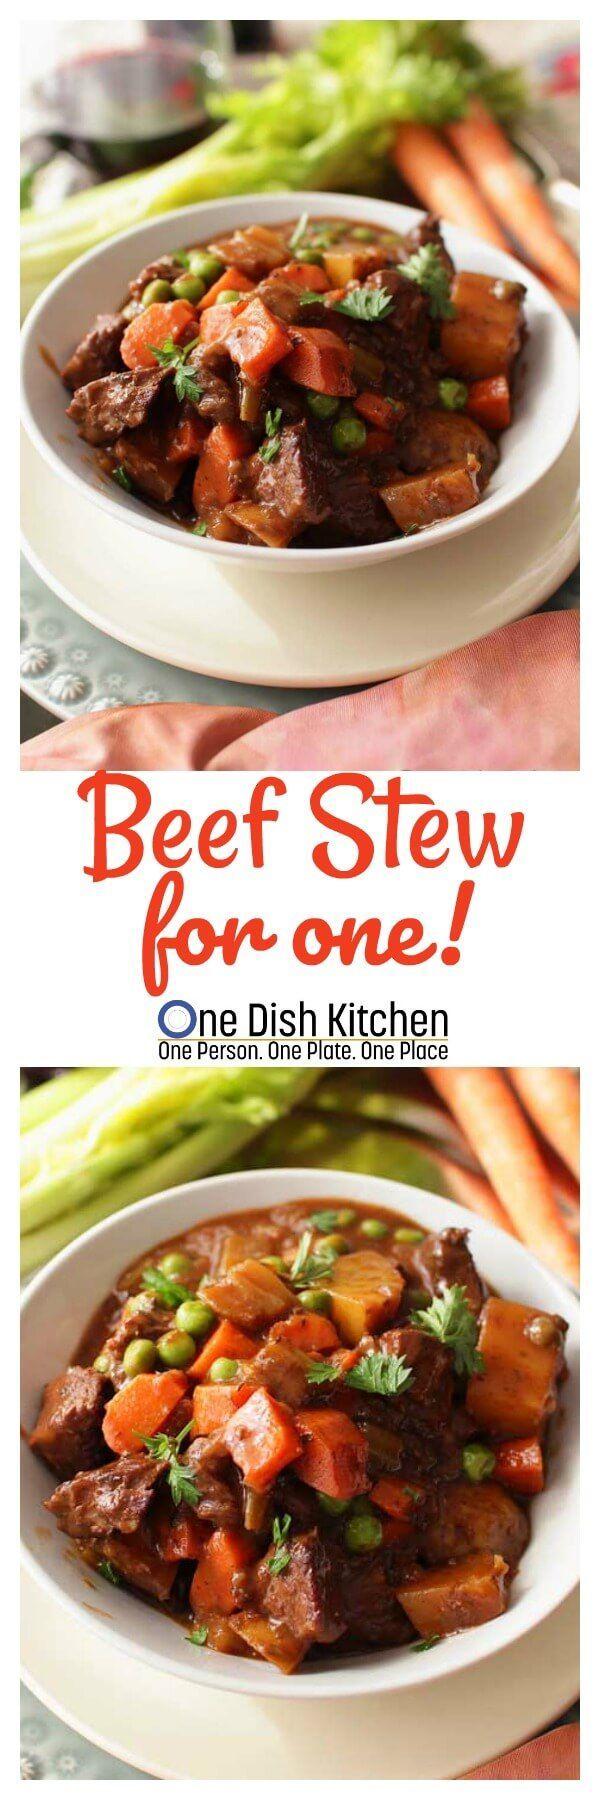 Easy Beef Stew For One Single Serving One Dish Kitchen Recipe Easy Beef Stew Recipe Easy Beef Stew Beef Stew Recipe Video